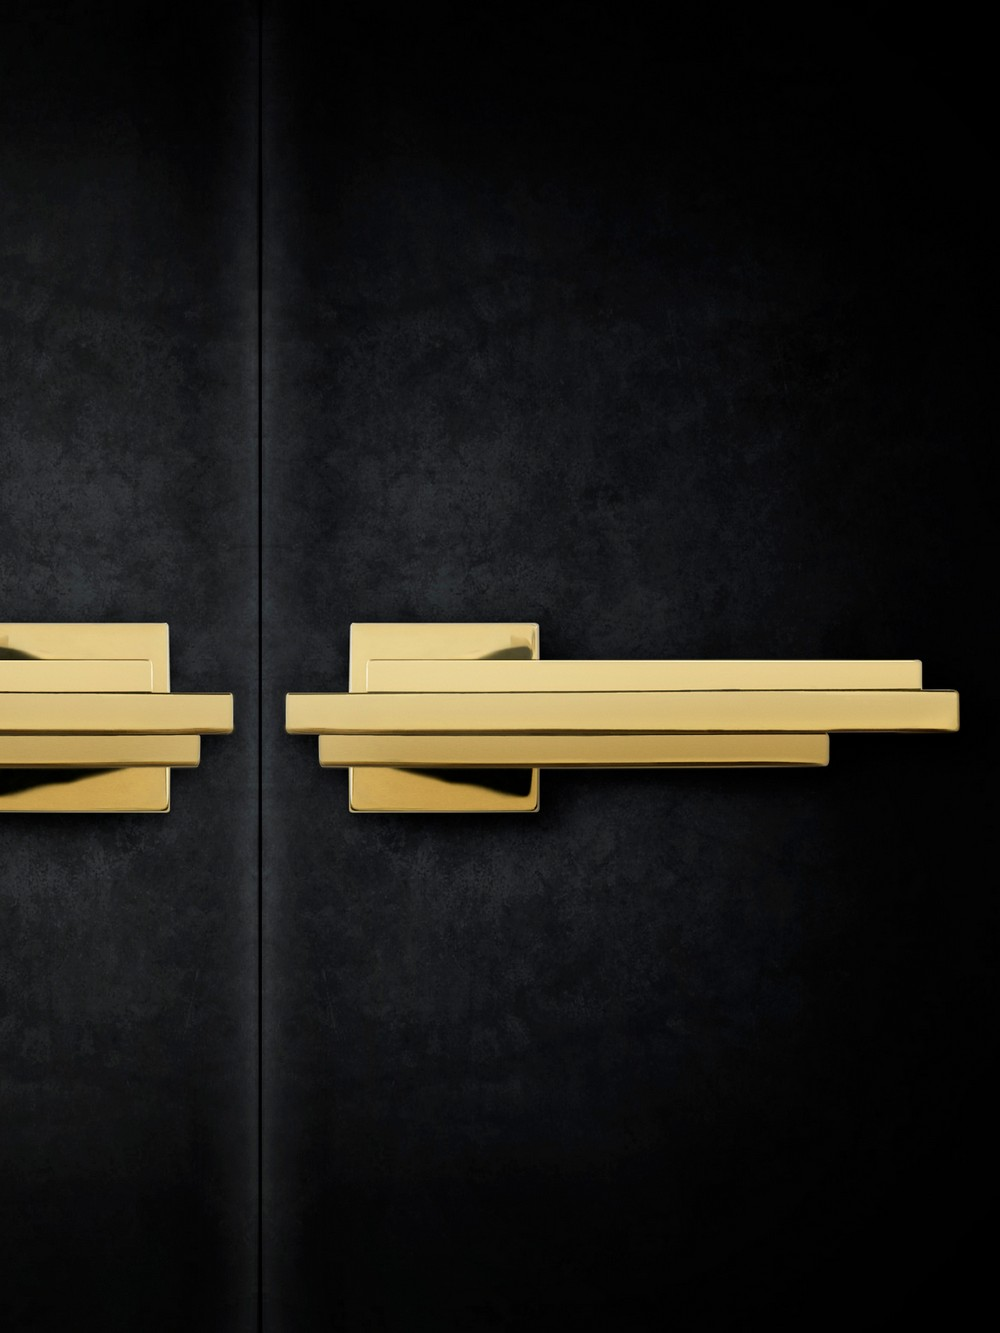 Upgrade Your Door Design with One-of-a-Kind Door Levers 5 door design Upgrade Your Door Design with One-of-a-Kind Door Levers Upgrade Your Door Design with One of a Kind Door Levers 5